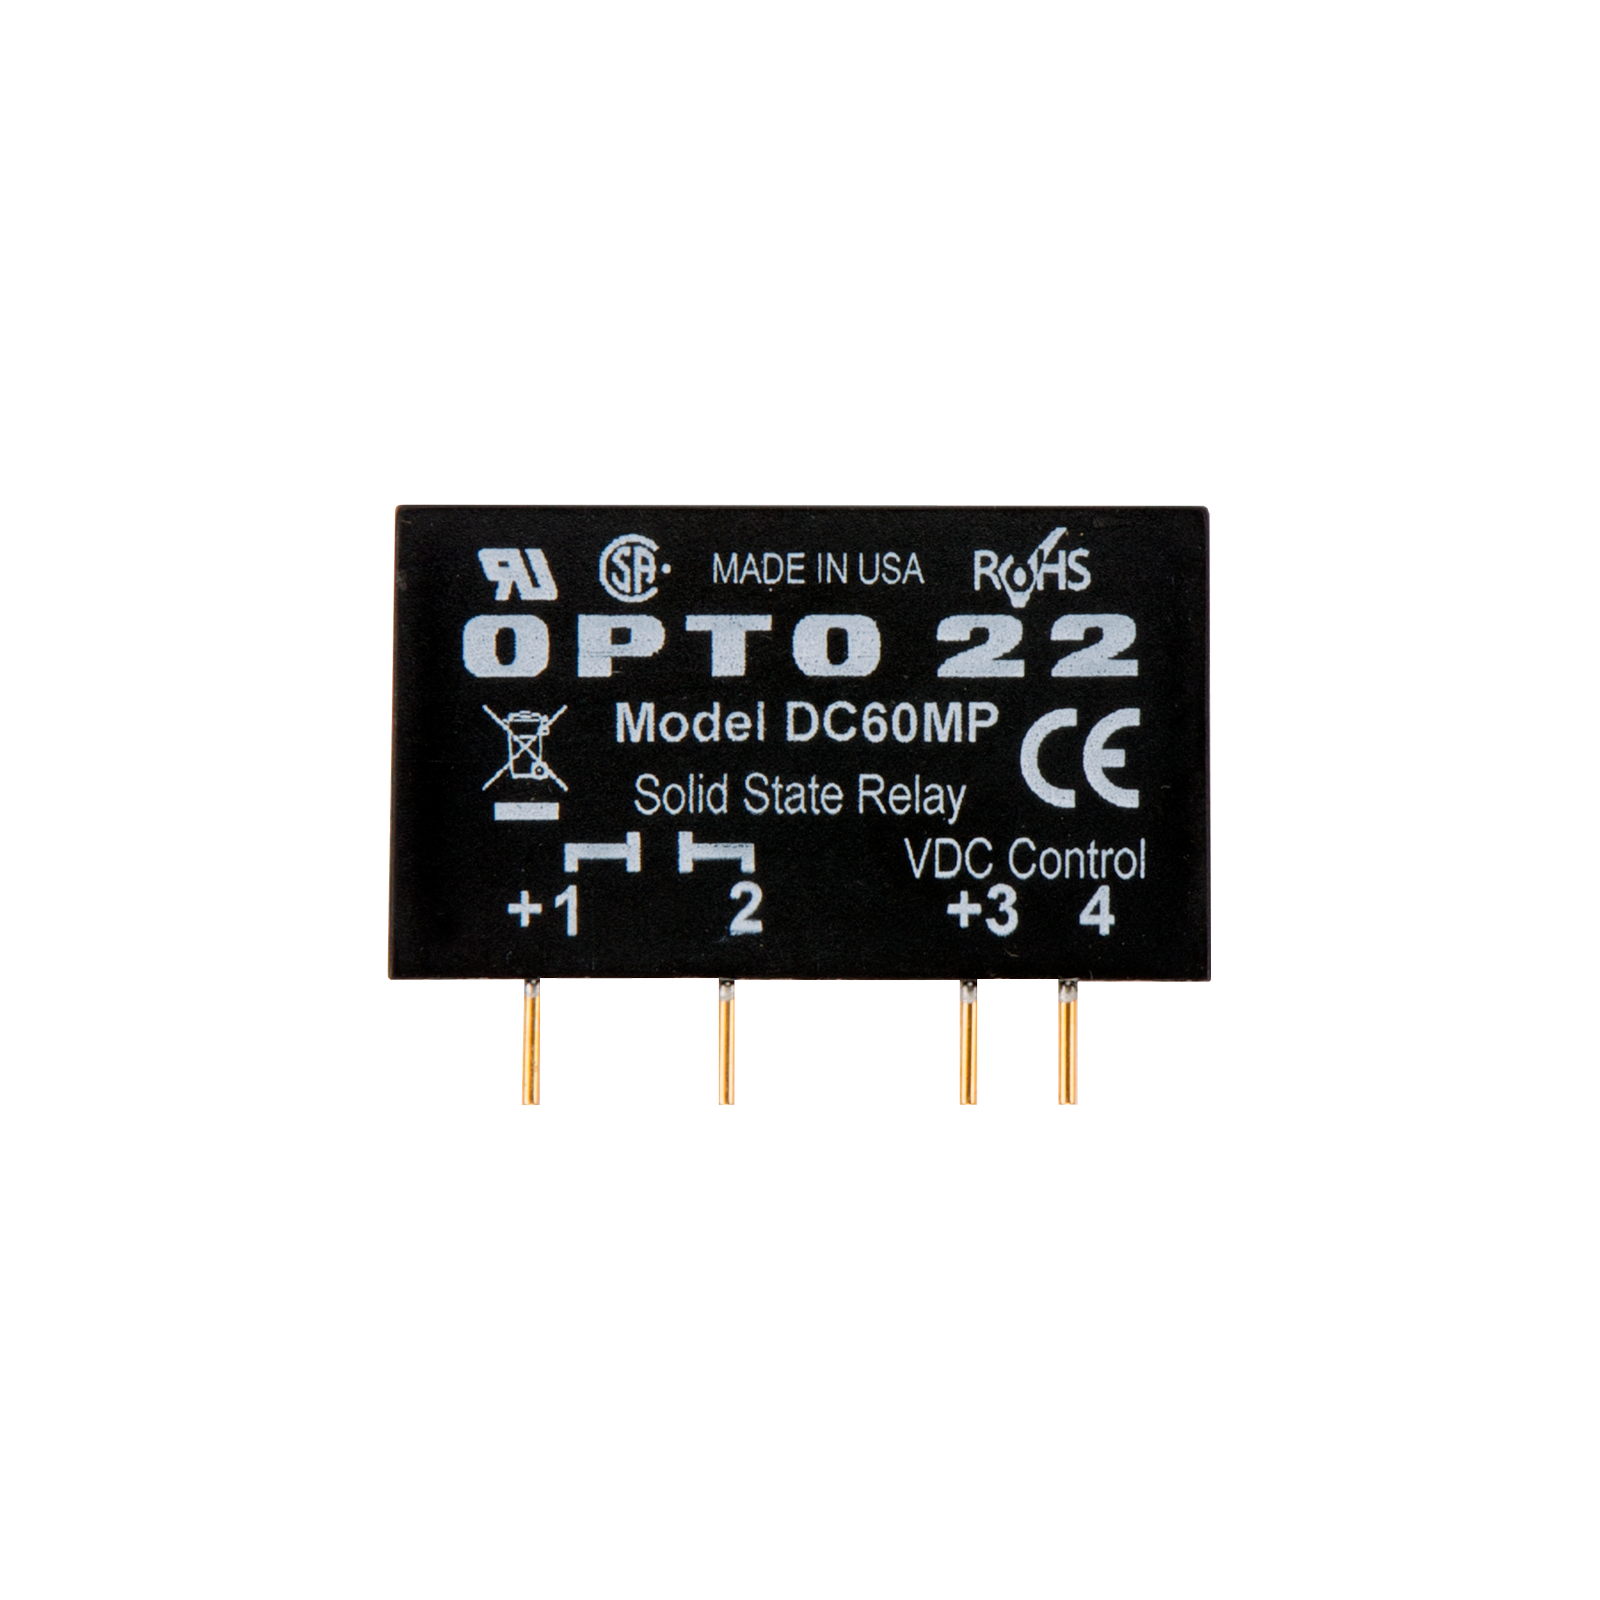 [DIAGRAM_3NM]  Opto22 - DC60MP - MP Model, 60 VDC, 3 Amp, DC Control Solid State Relay (SSR ) | Opto 22 Ssr Wiring Diagram |  | Opto 22